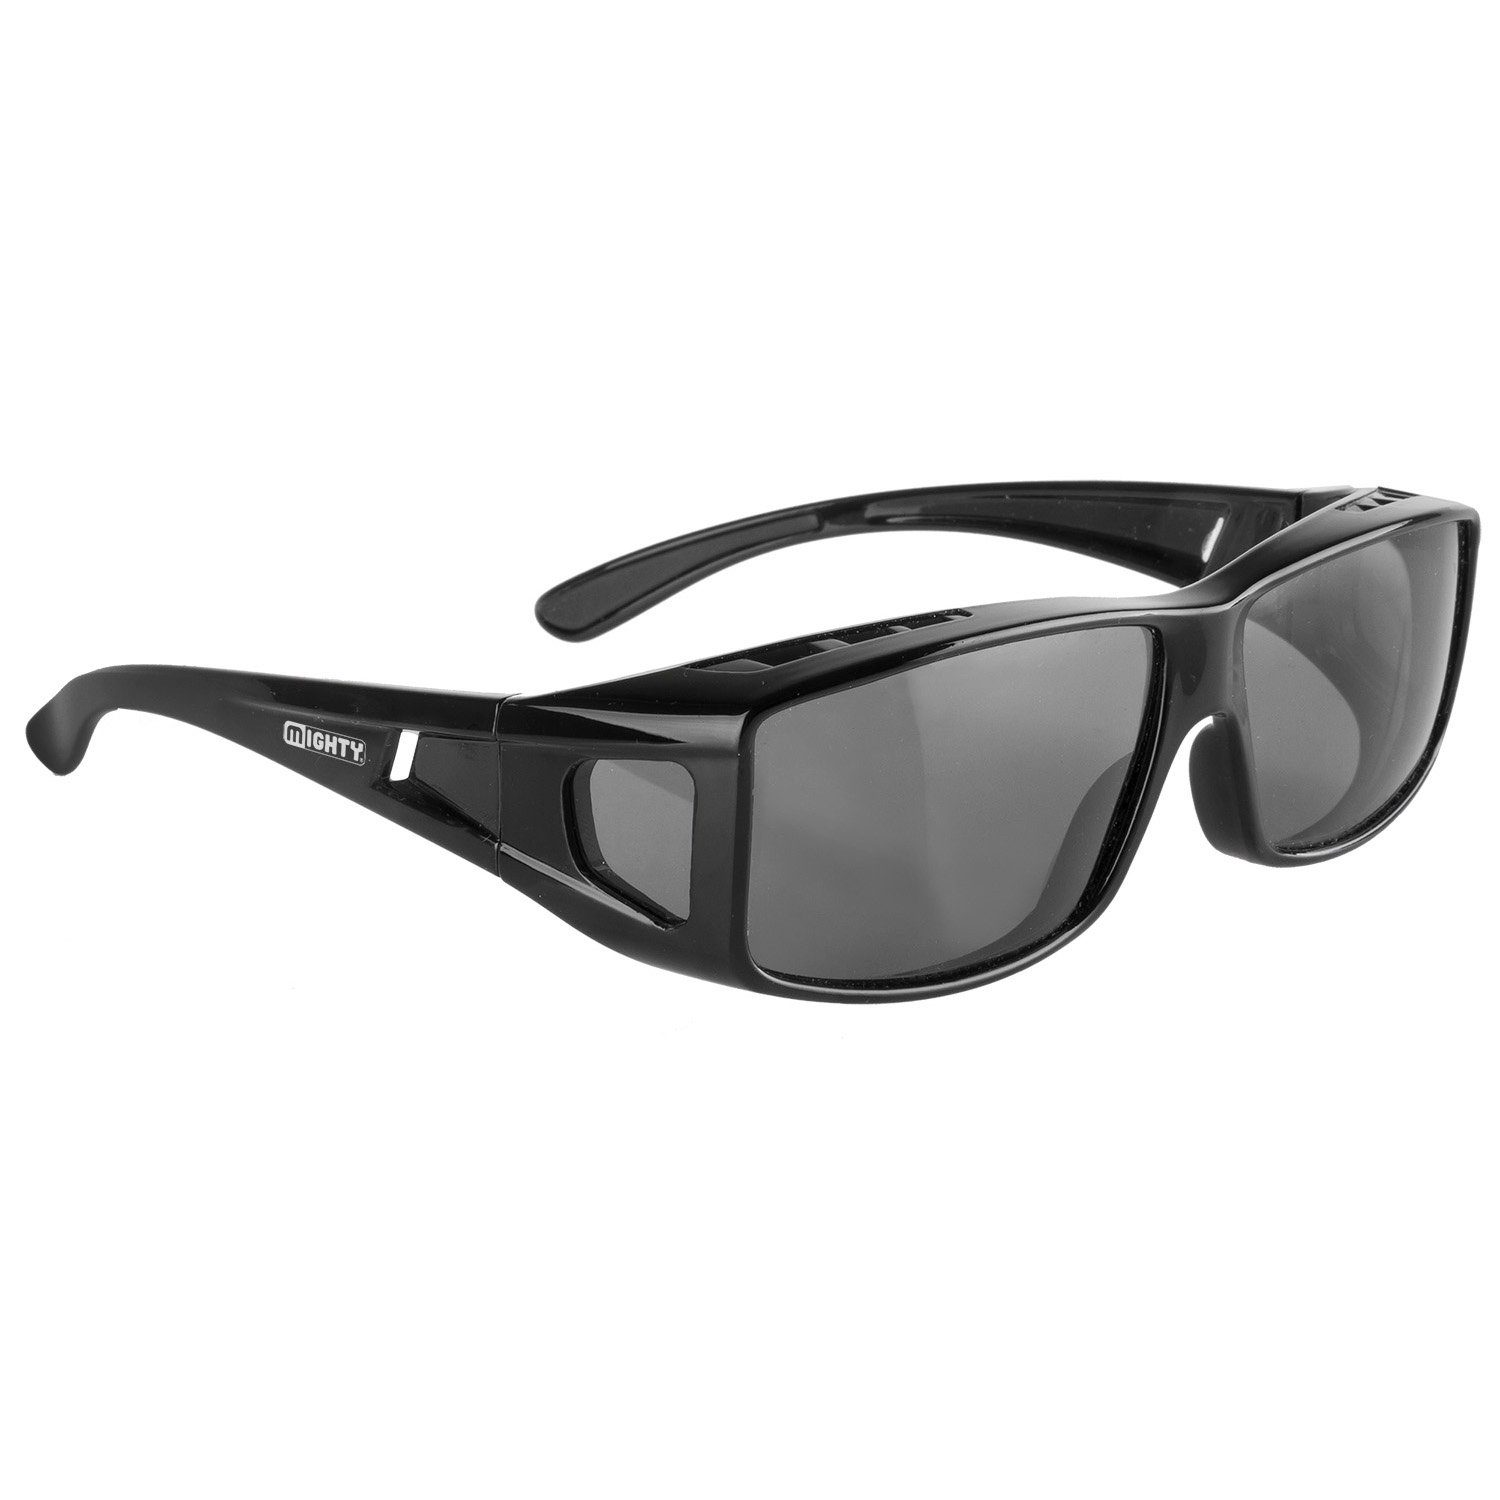 MIGHTY Sport-/Fahrradbrille Rayon Fit Over schwarz Fahrradbrillen Brillen Sportausrüstung Accessoires Fahrrad-Bekleidung Unisex